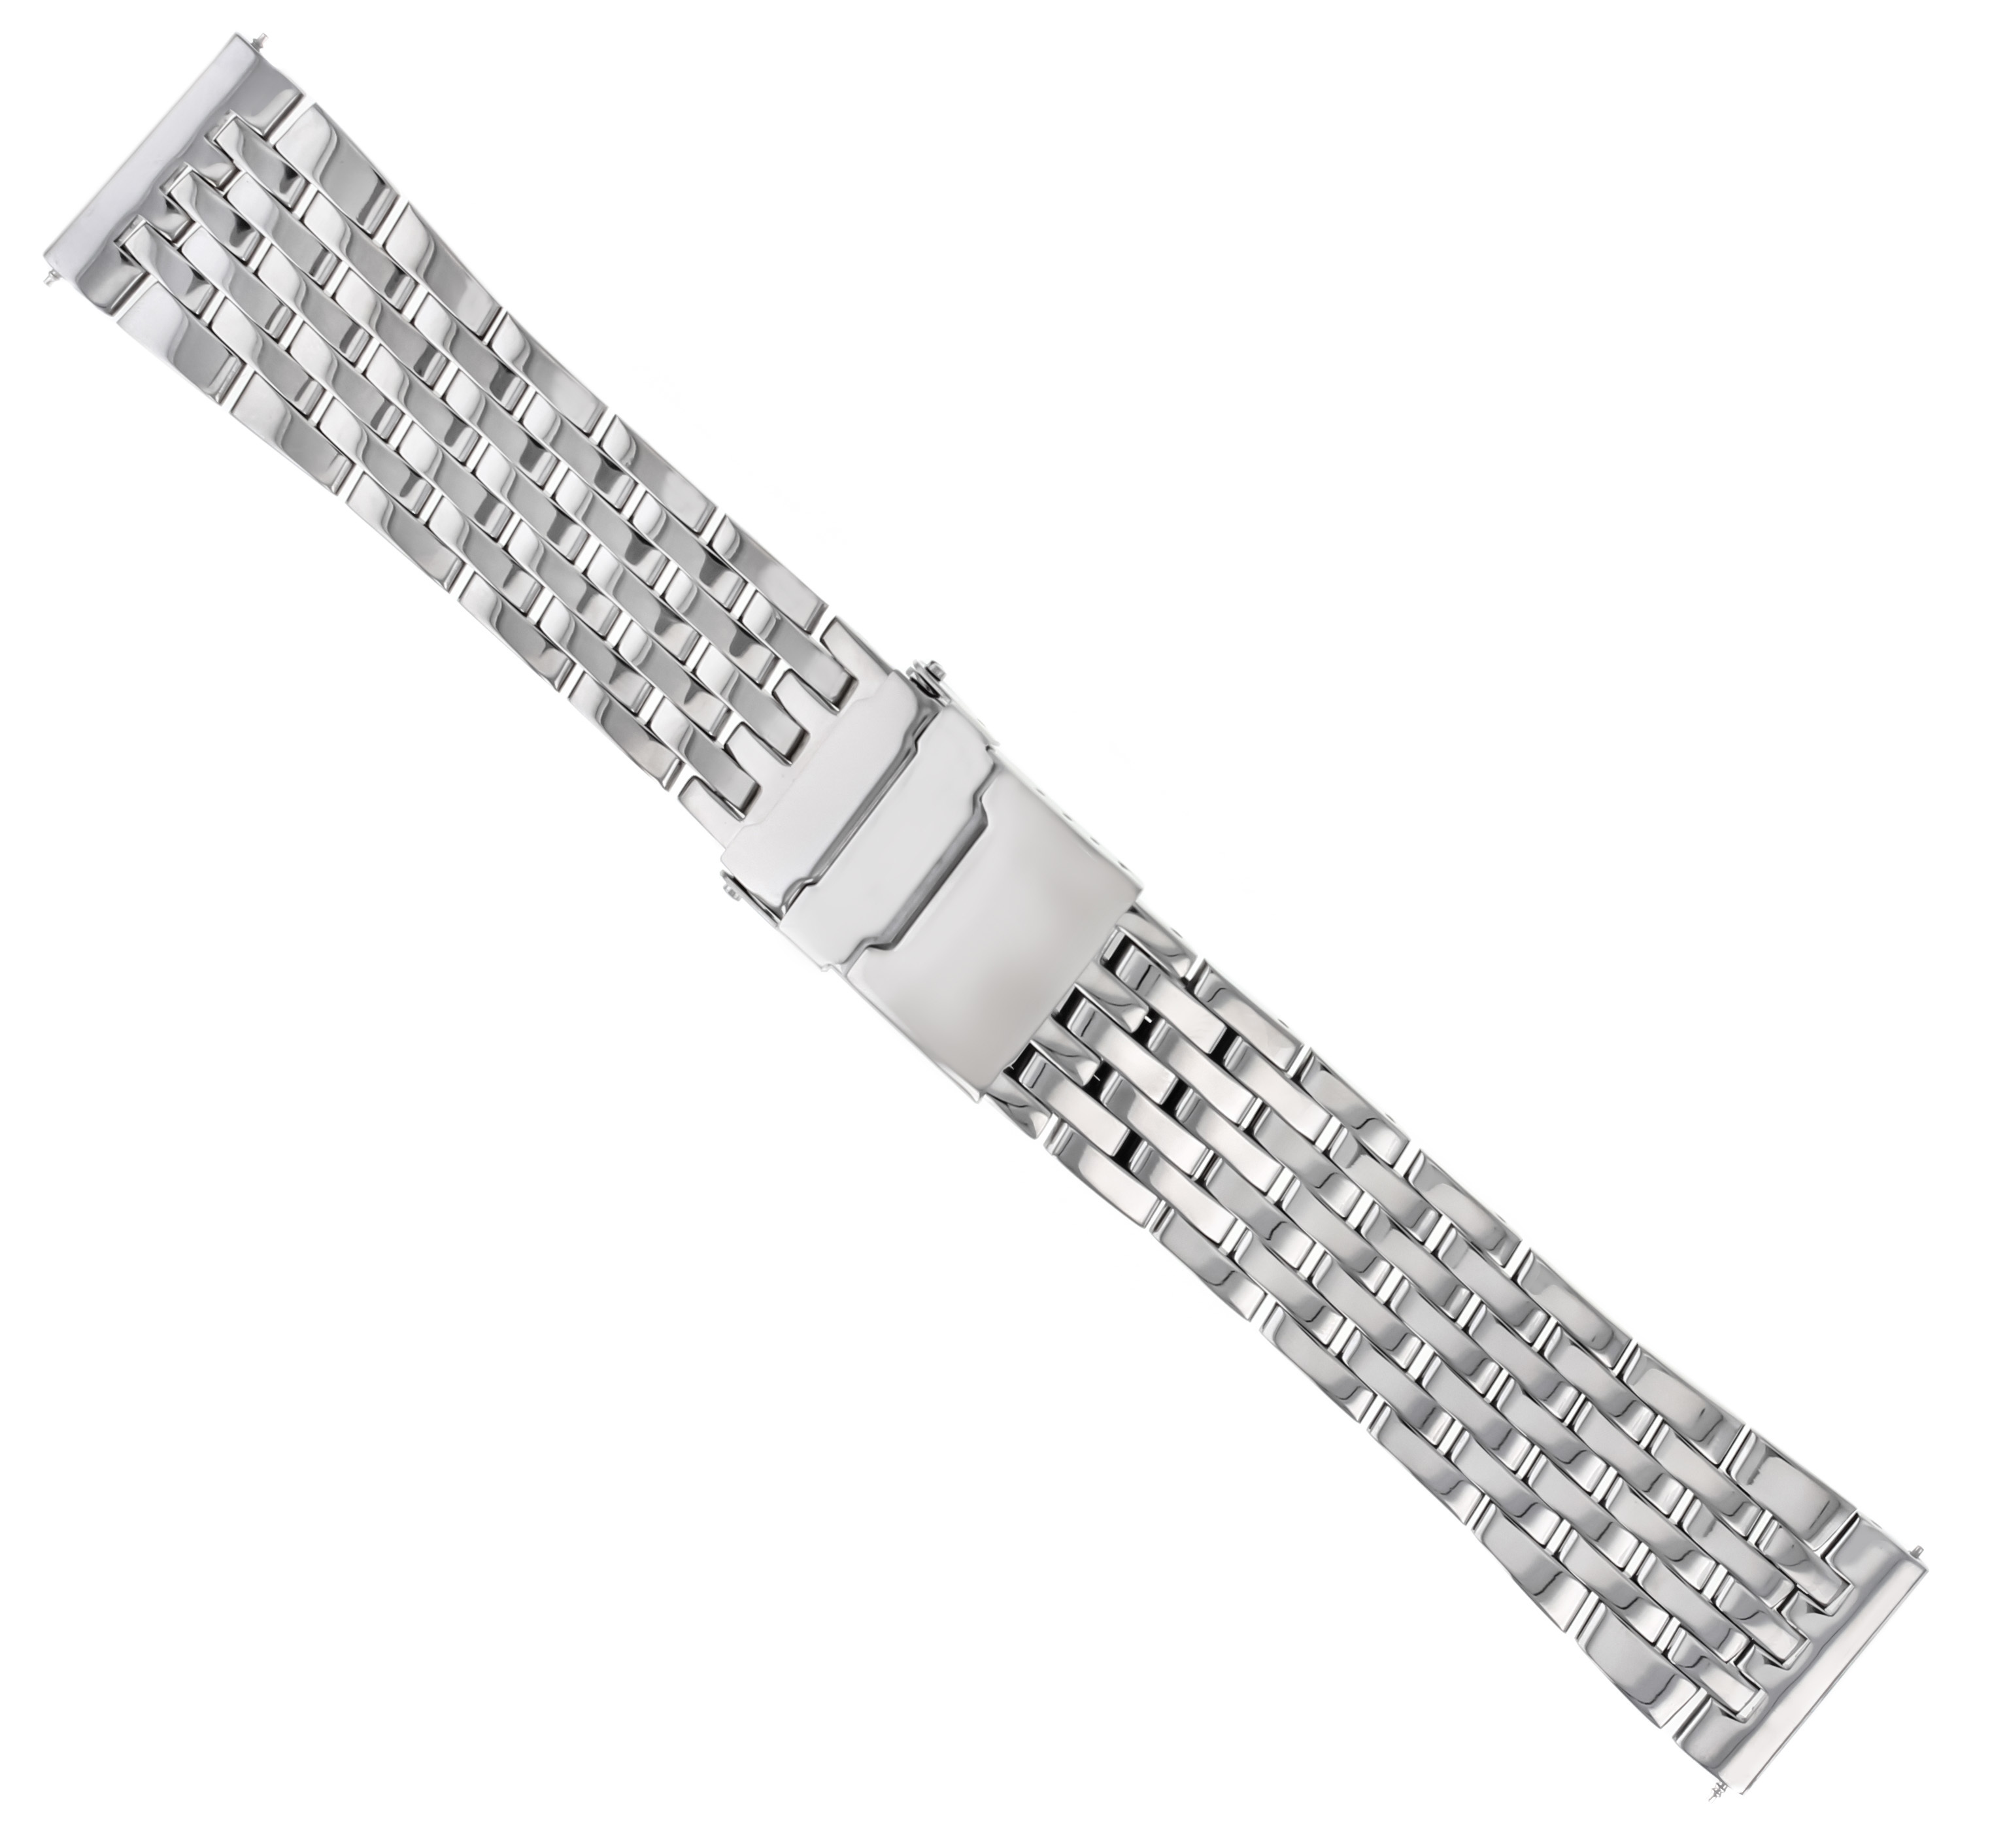 22MM WATCH BAND BRACELET FOR BREITLING NAVITIMER A13322 7 LINK STAINLESS S SHINY